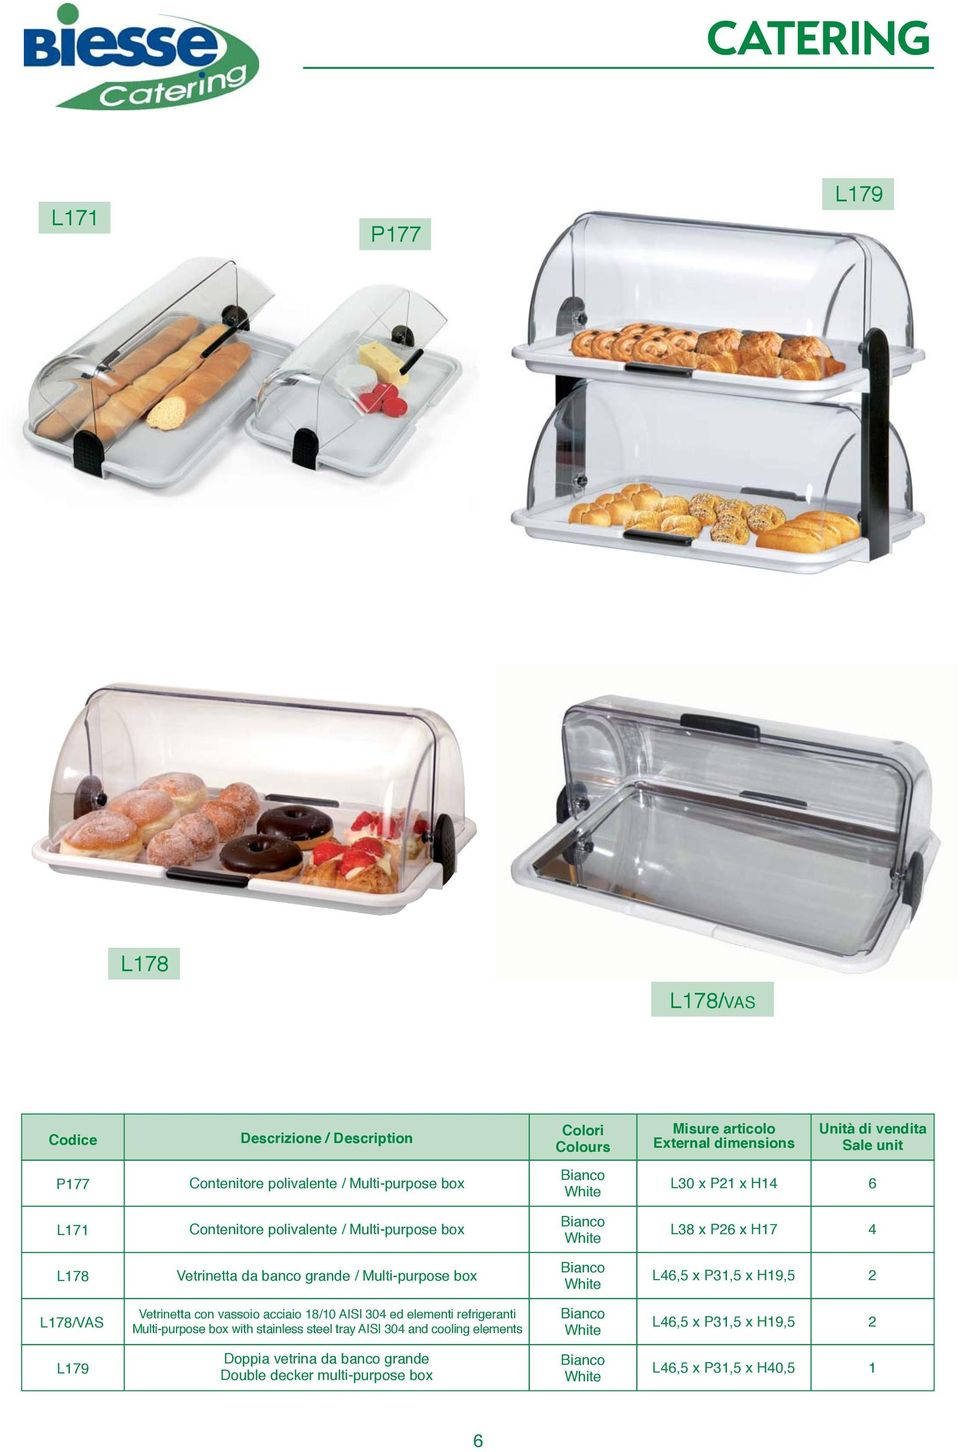 L178/VAS Vetrinetta con vassoio acciaio 18/10 AISI 04 ed elementi refrigeranti Multi-purpose box with stainless steel tray